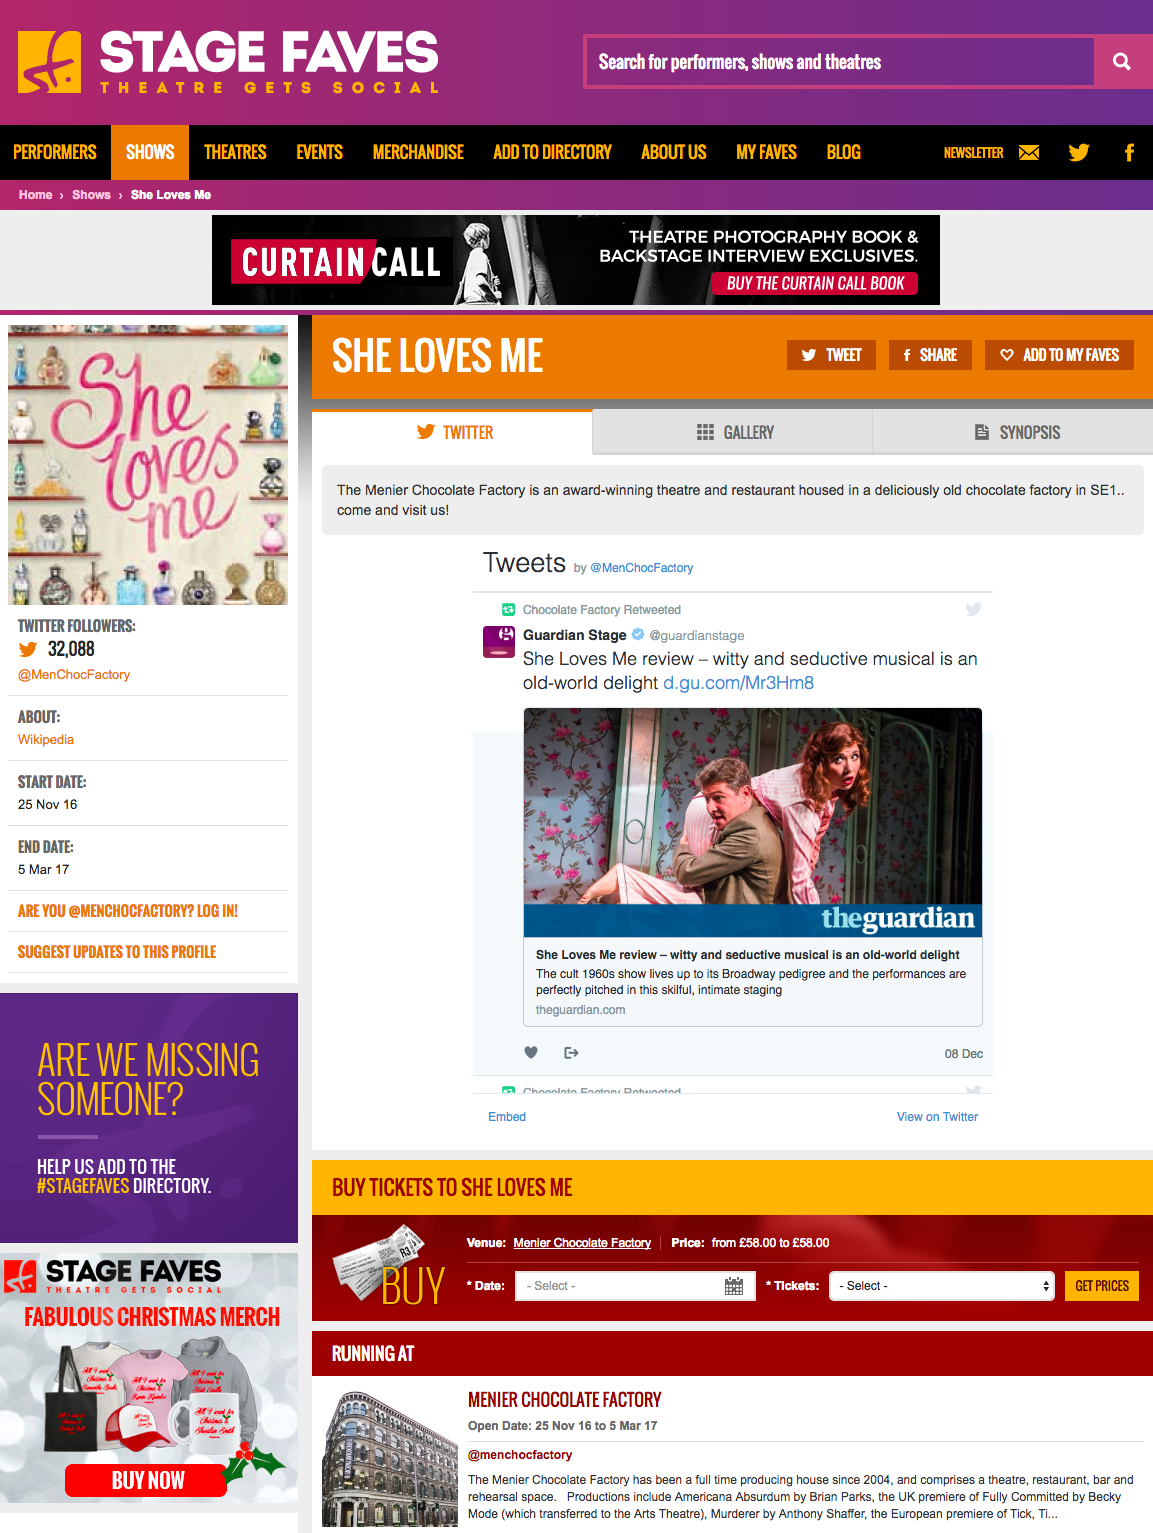 Get all social media (& show pics) for SHE LOVES ME & its cast on www.stagefaves.com